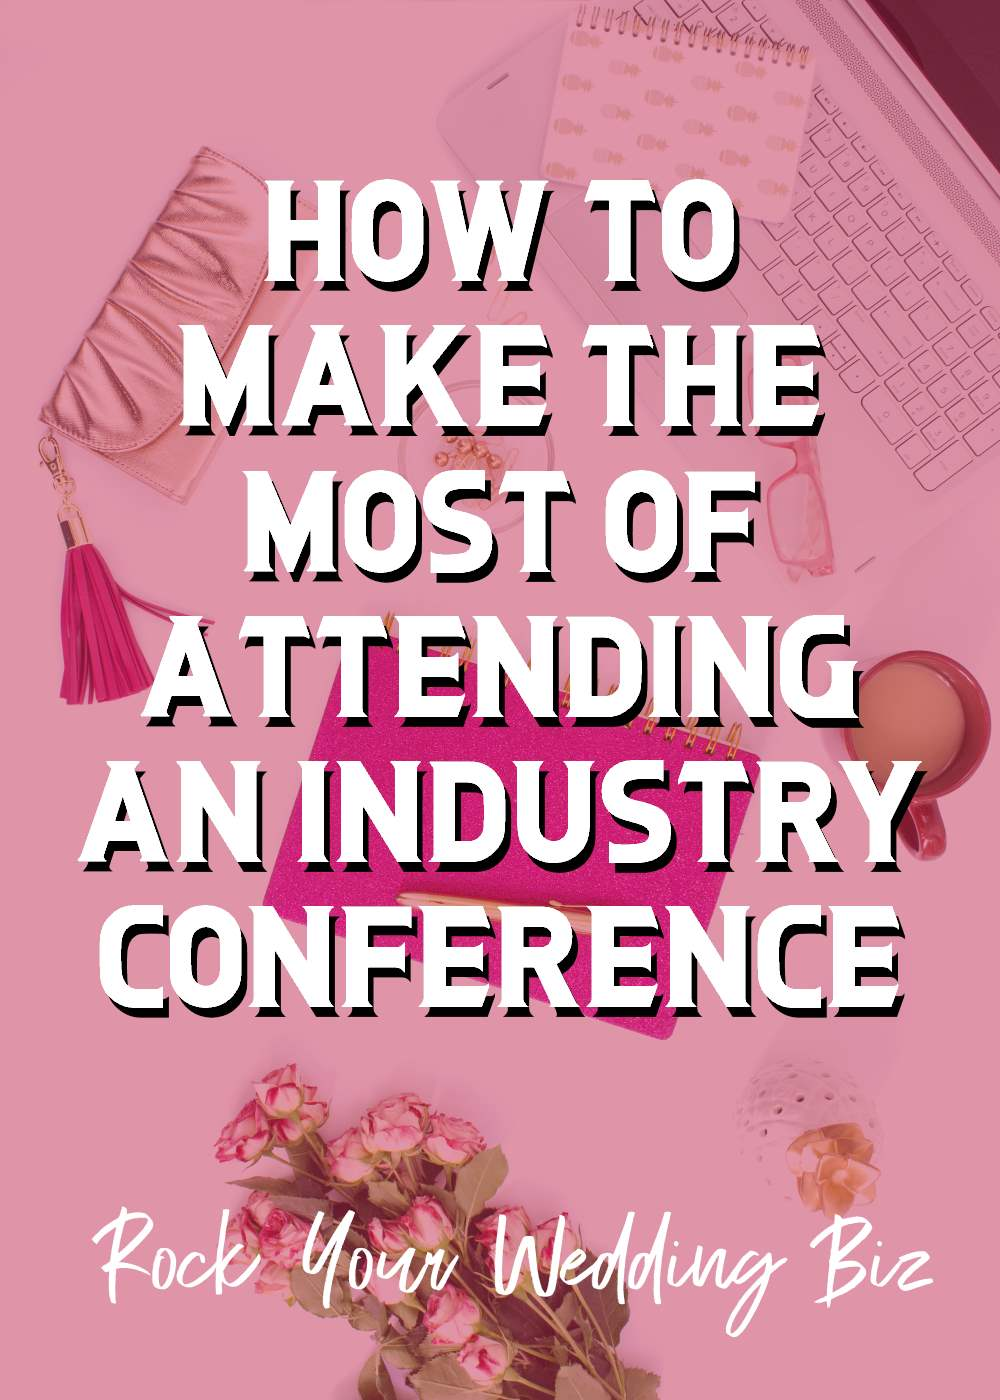 Episode 23 - How to Make the Most of Attending an Industry Conference